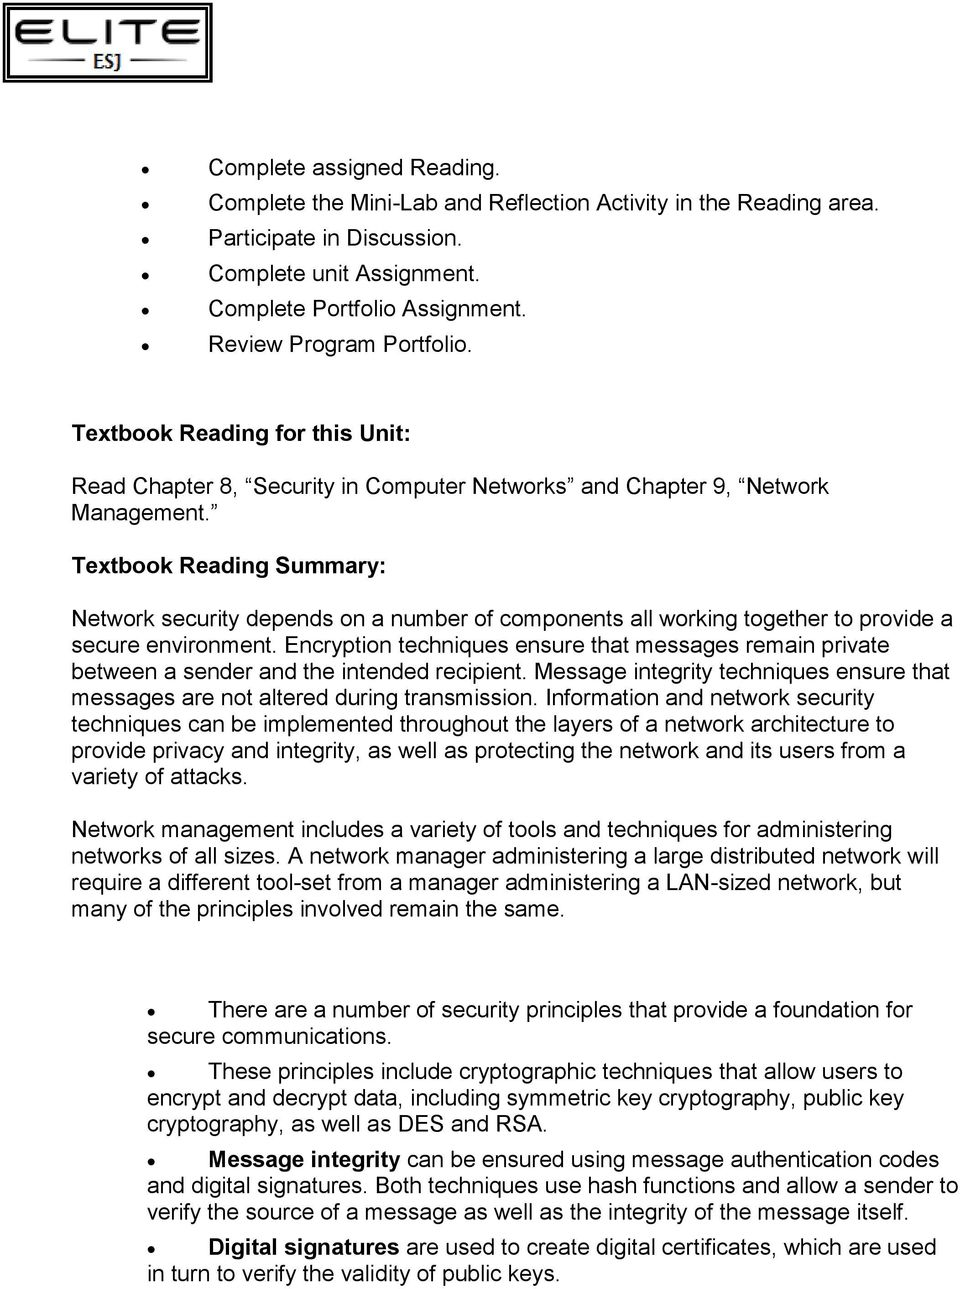 Textbook Reading Summary: Network security depends on a number of components all working together to provide a secure environment.